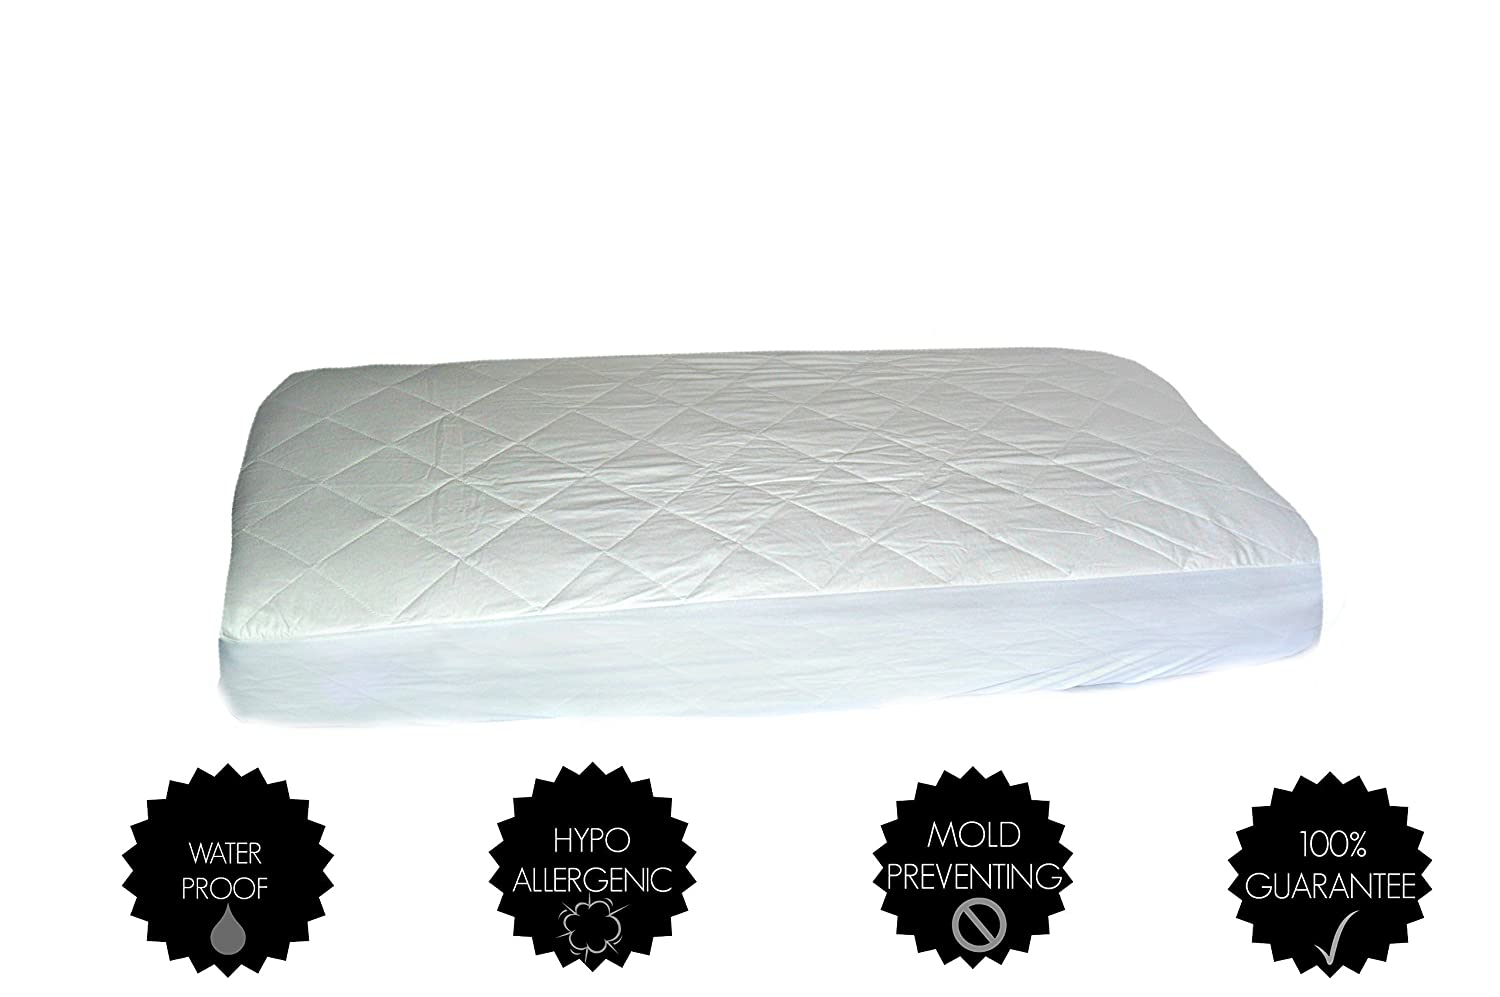 Baby Crib Mattress Protector Pad 100/% Waterproof Premium Hypoallergenic Cotton Fitted Cover Nocturnal Nirvana